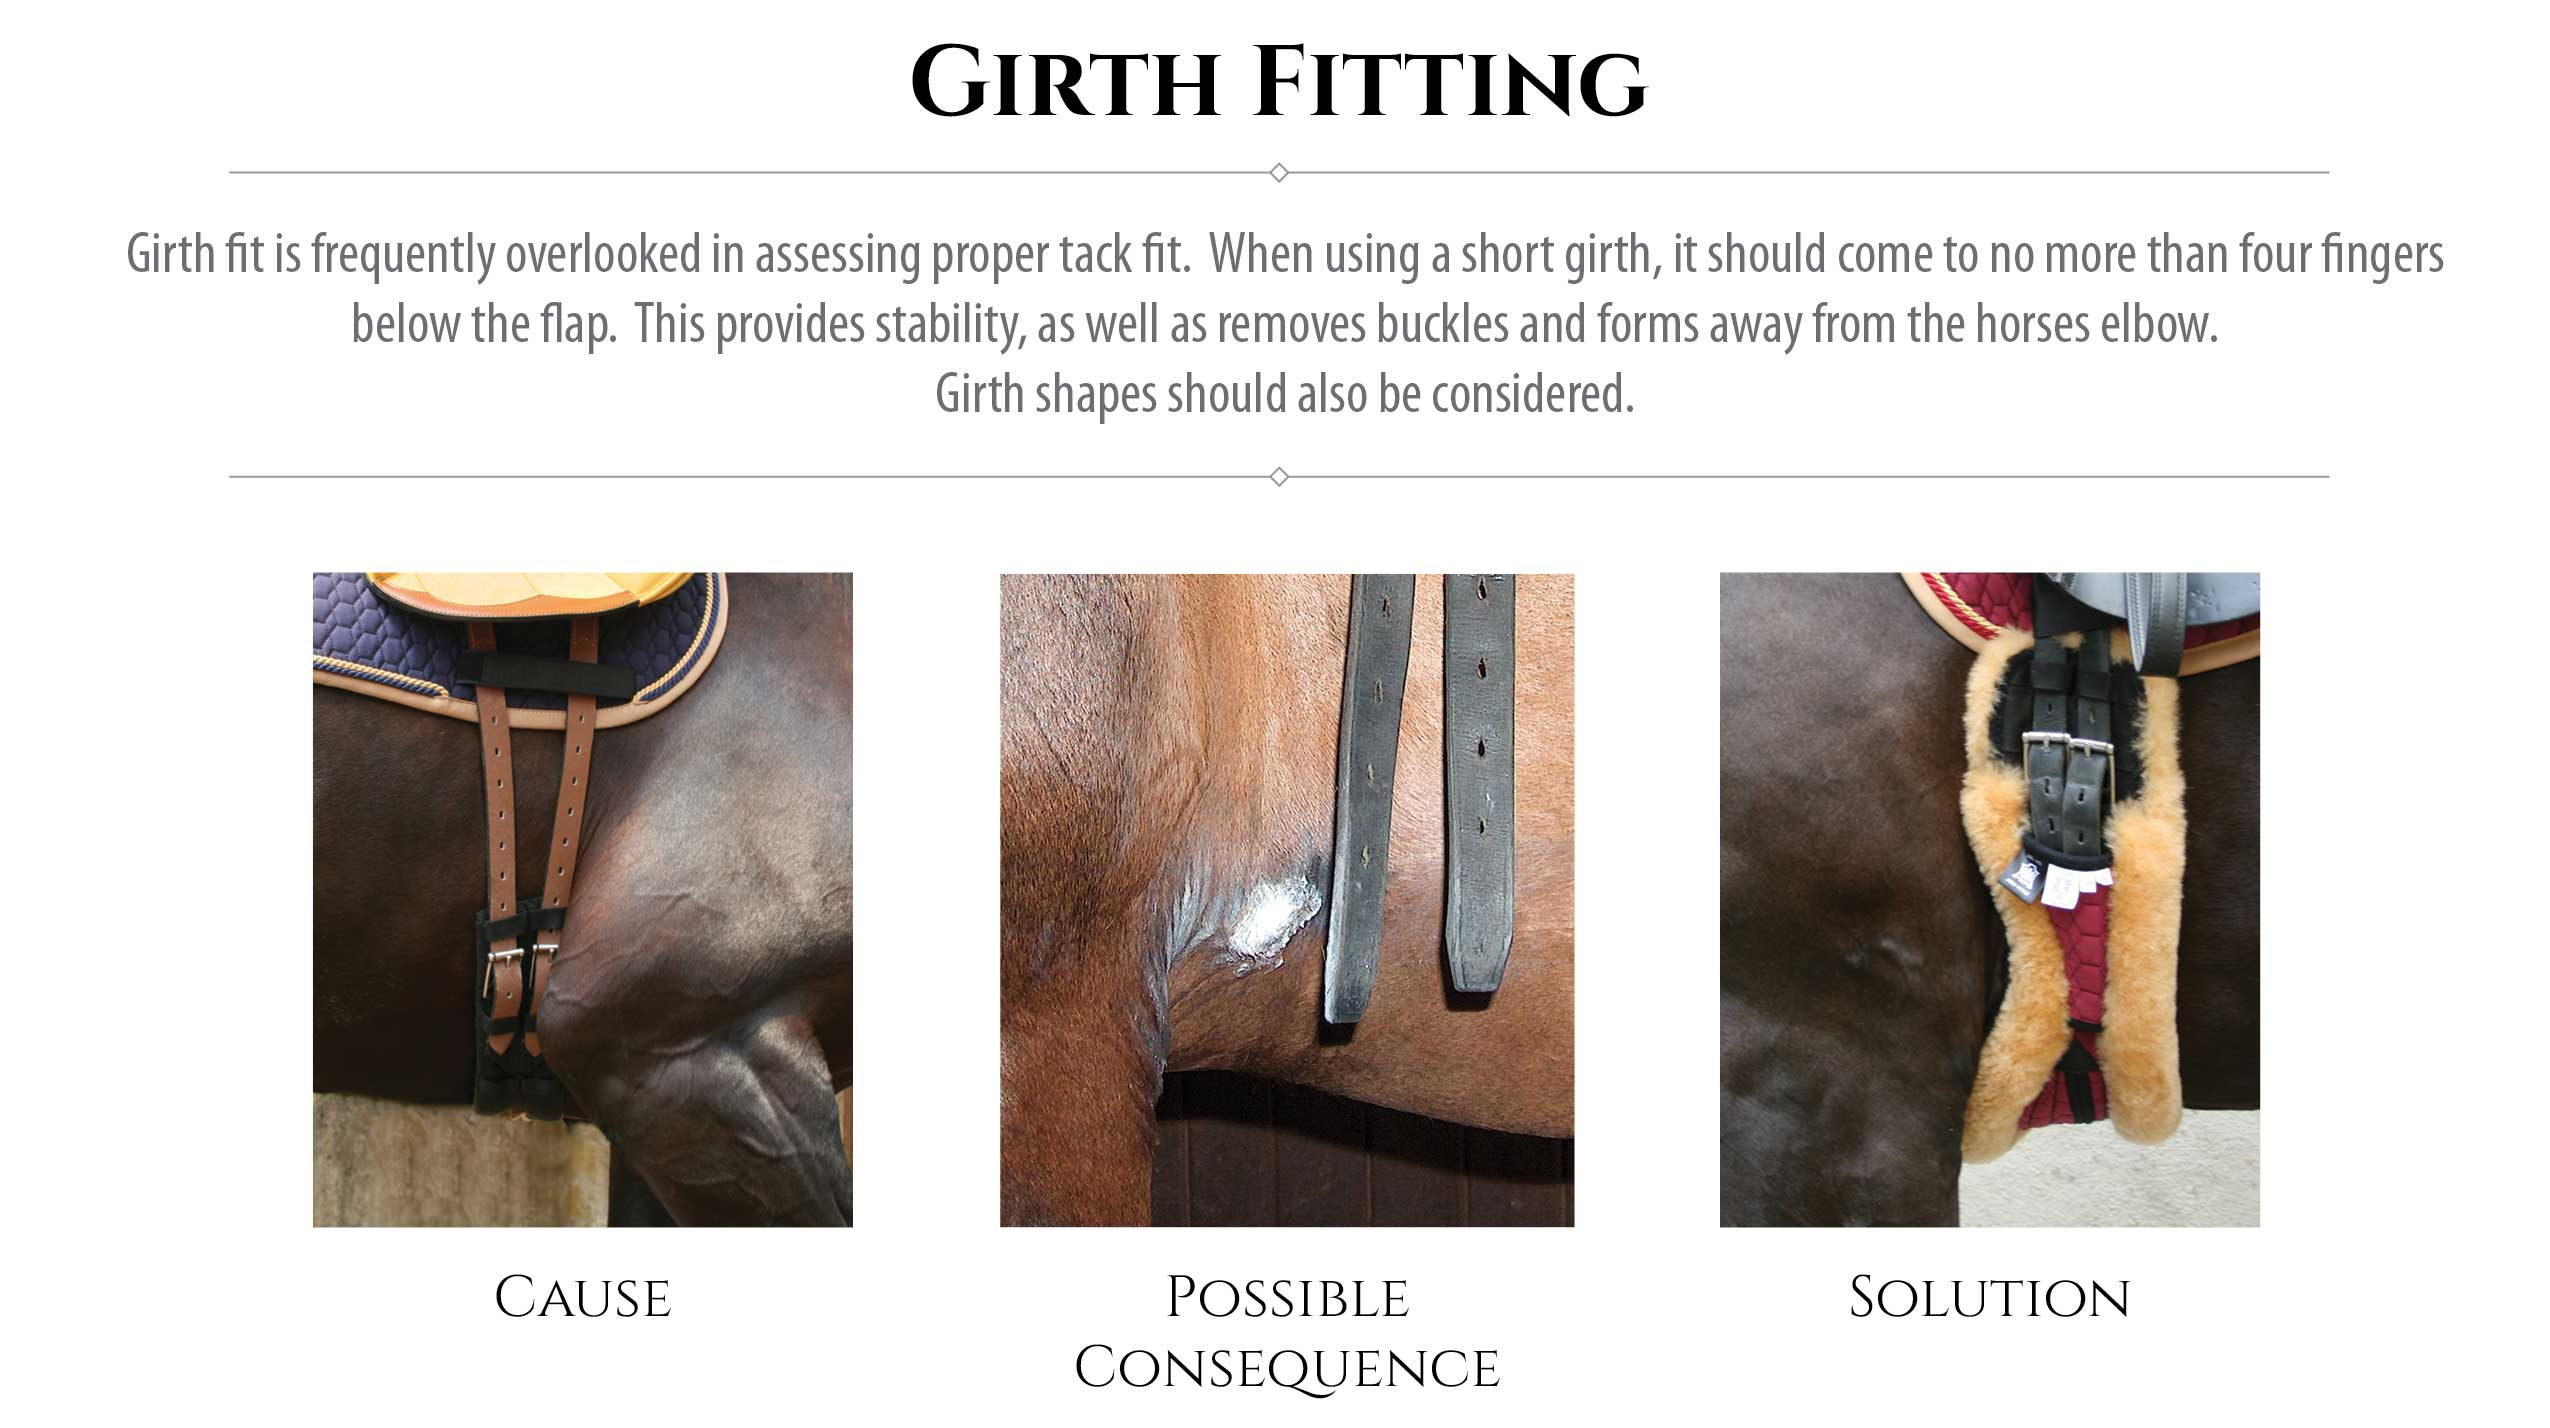 Mattes-girth-fitting